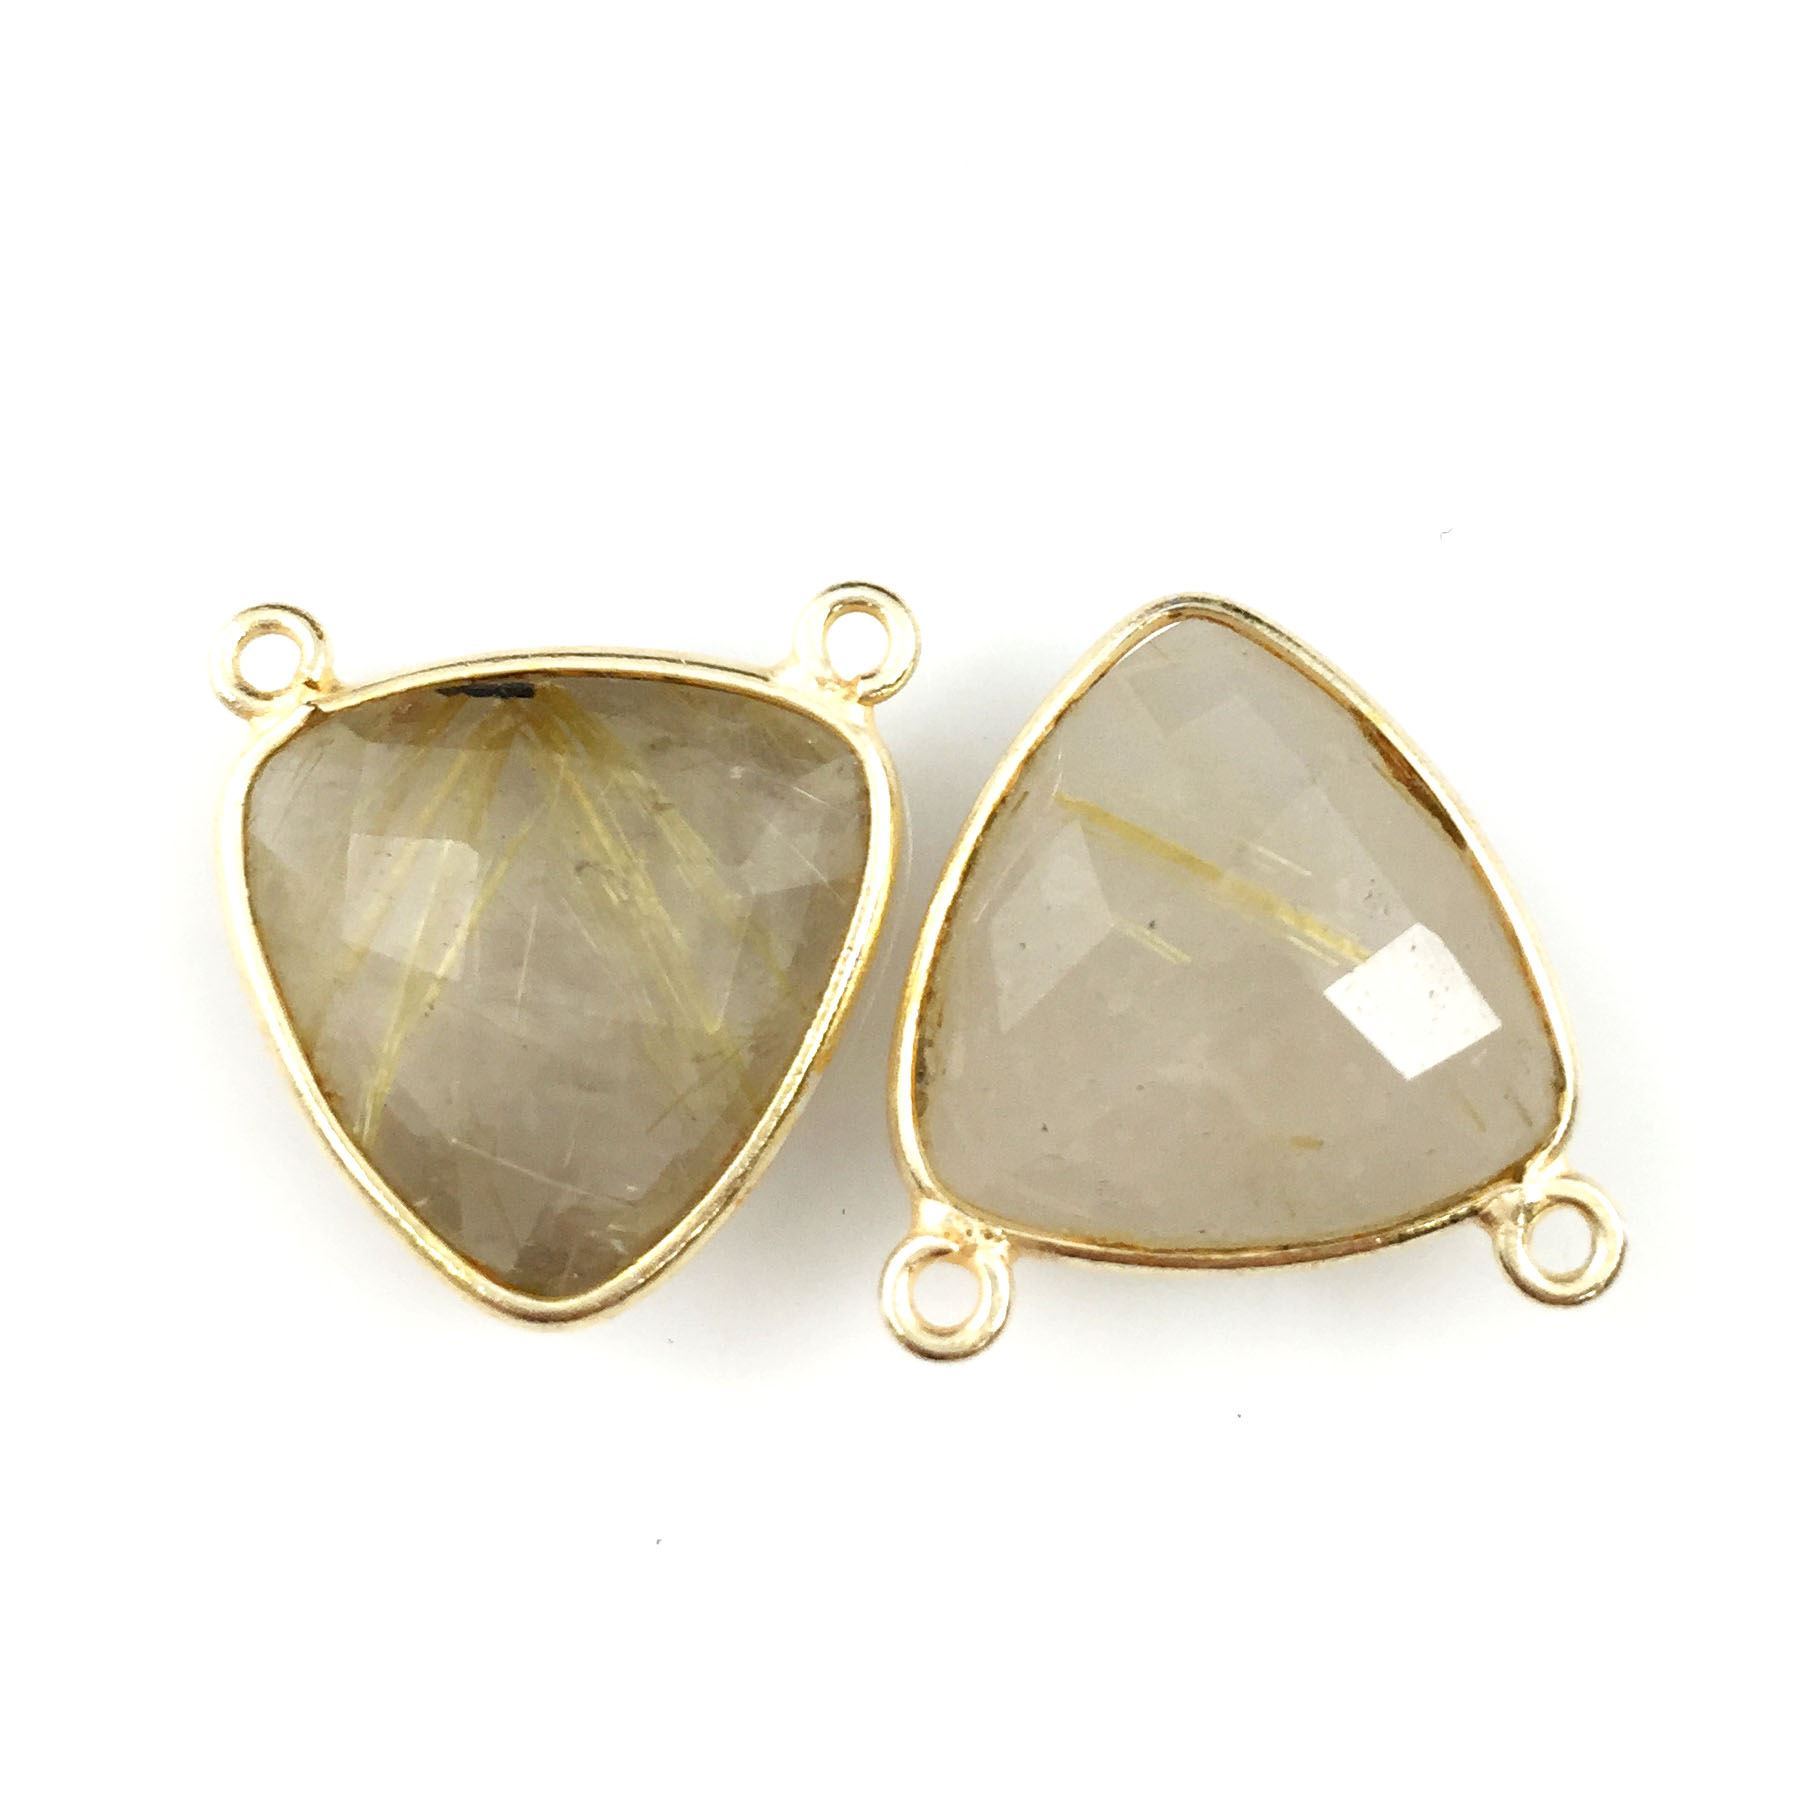 Bezel Gemstone Connector Pendant - Gold Rutilated Quartz - Gold plated Sterling Silver - Small Trillion Shaped Faceted - 15mm - 1 piece